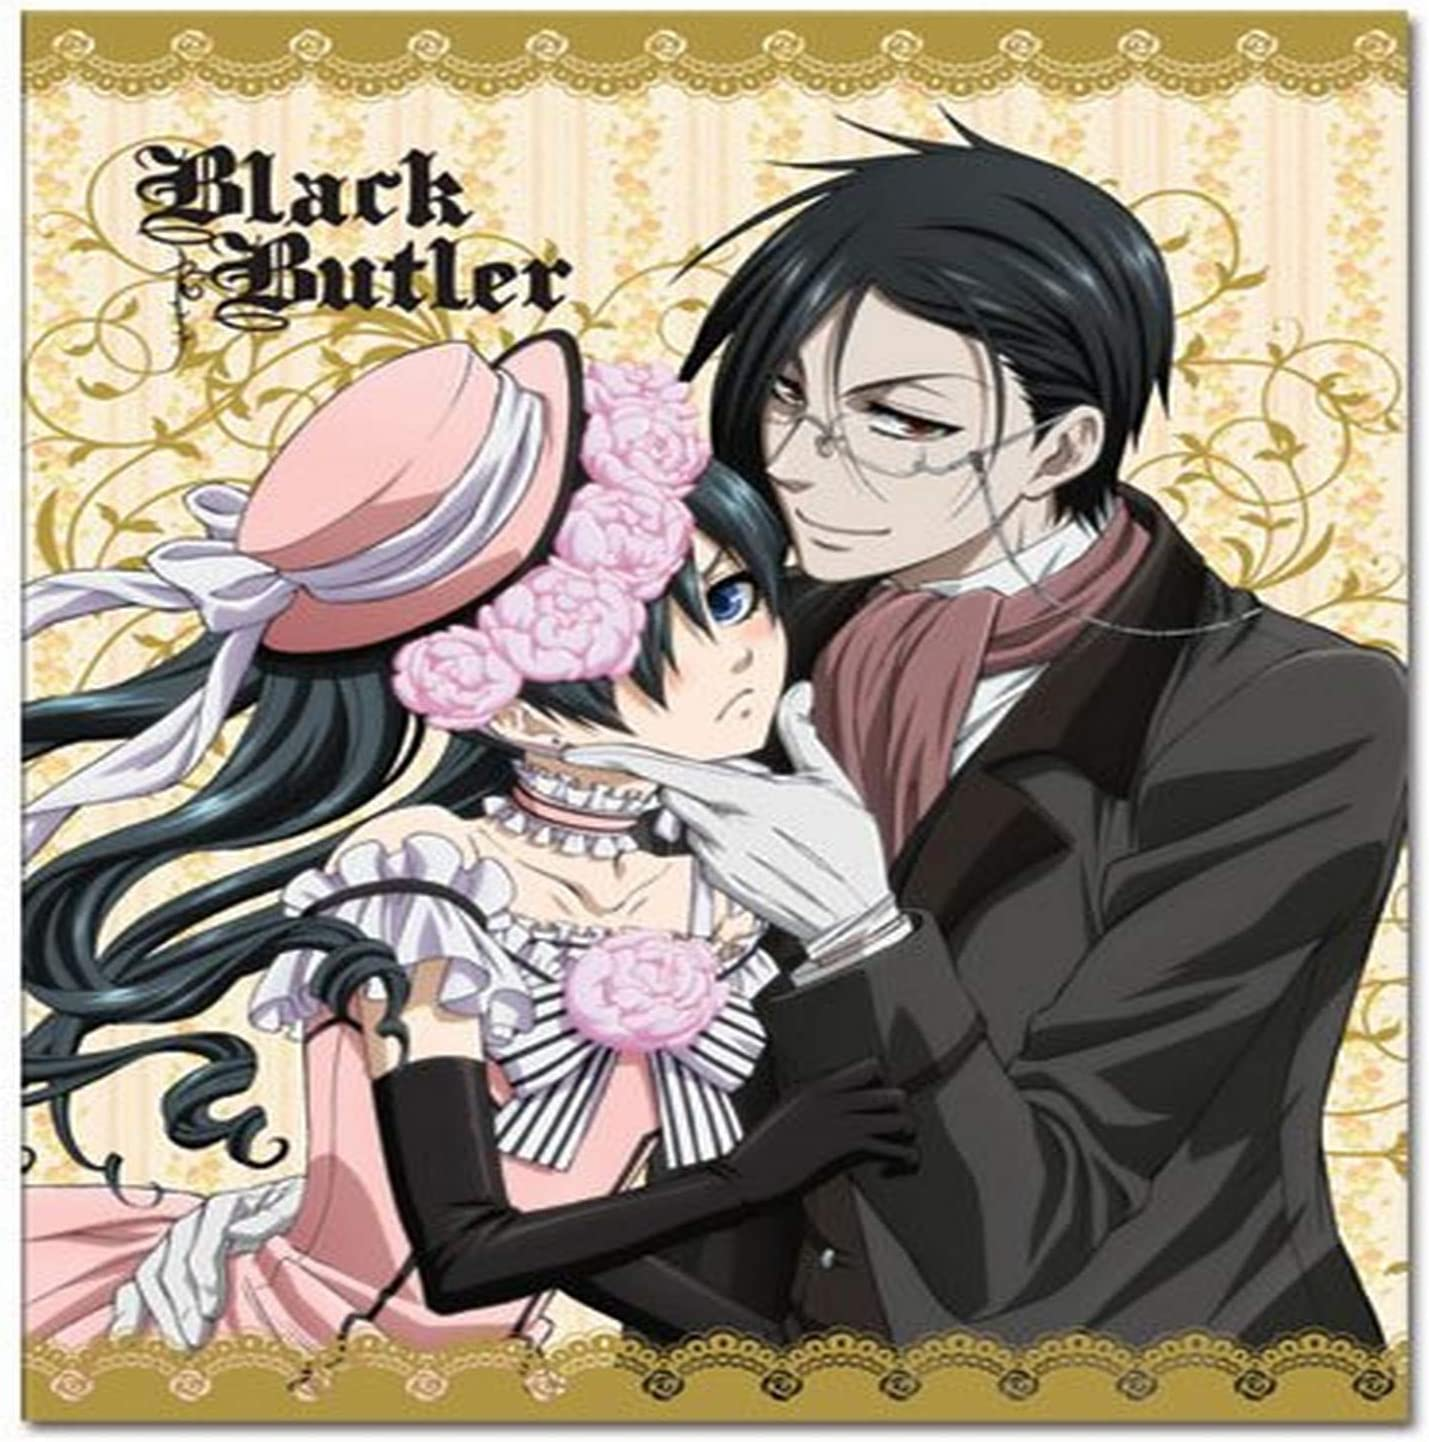 CIEL/& Sebastian Sublimation Throw Blanket One Size Muti//Colored Great Eastern Entertainment 57684 Black Butler